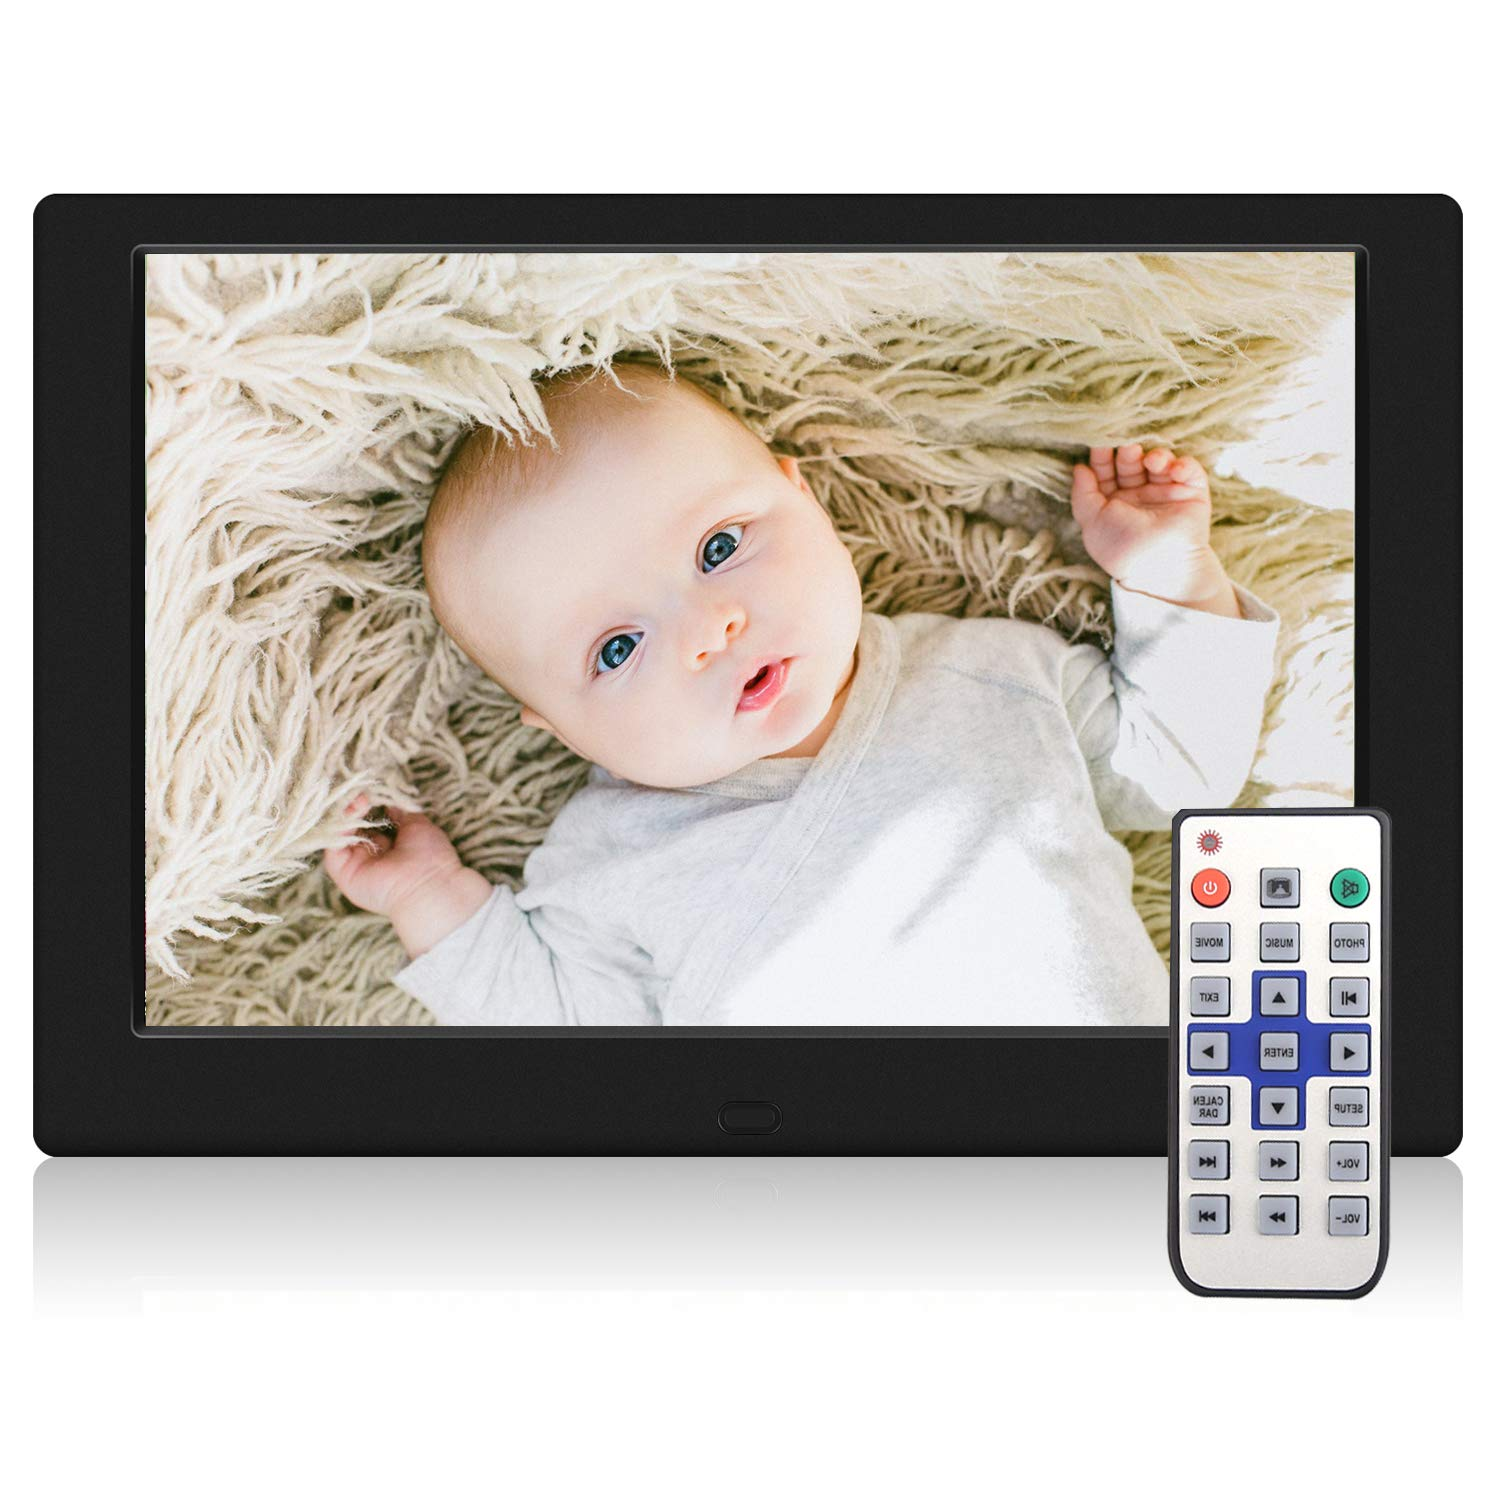 TENSWALL 10.1 Inch Digital Picture Frame, Advance Digital Photo Frame with Background Music, 1080P Video HD 1280x800 16:10 IPS Screen, Support 32GB USB Drives/SD Card, Remote Control -Black by Tenswall